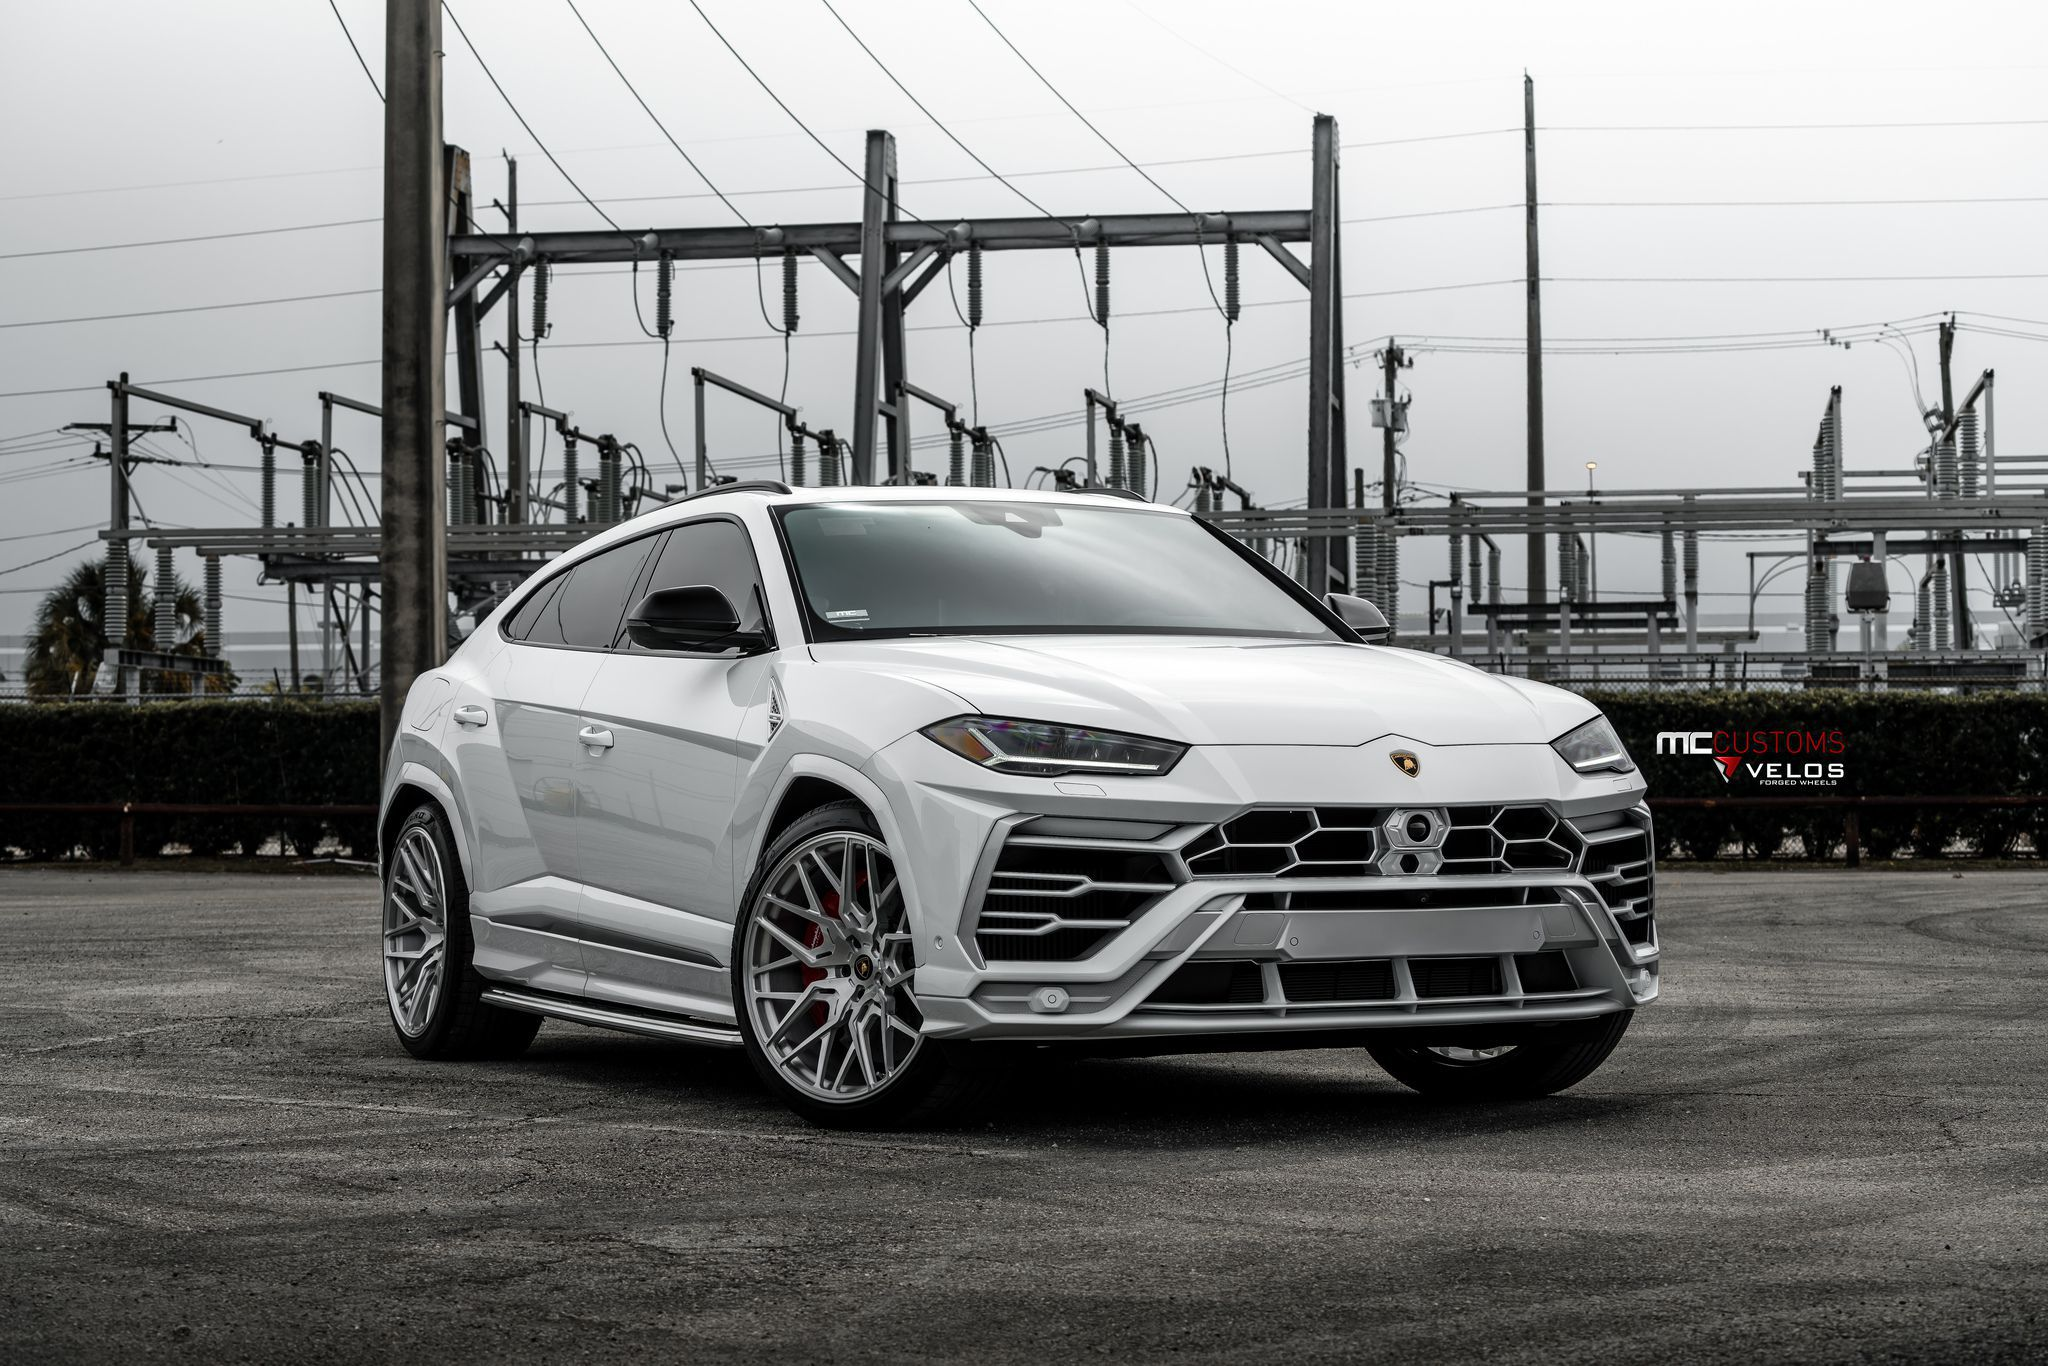 2019 Lamborghini Urus on velos custom wheels